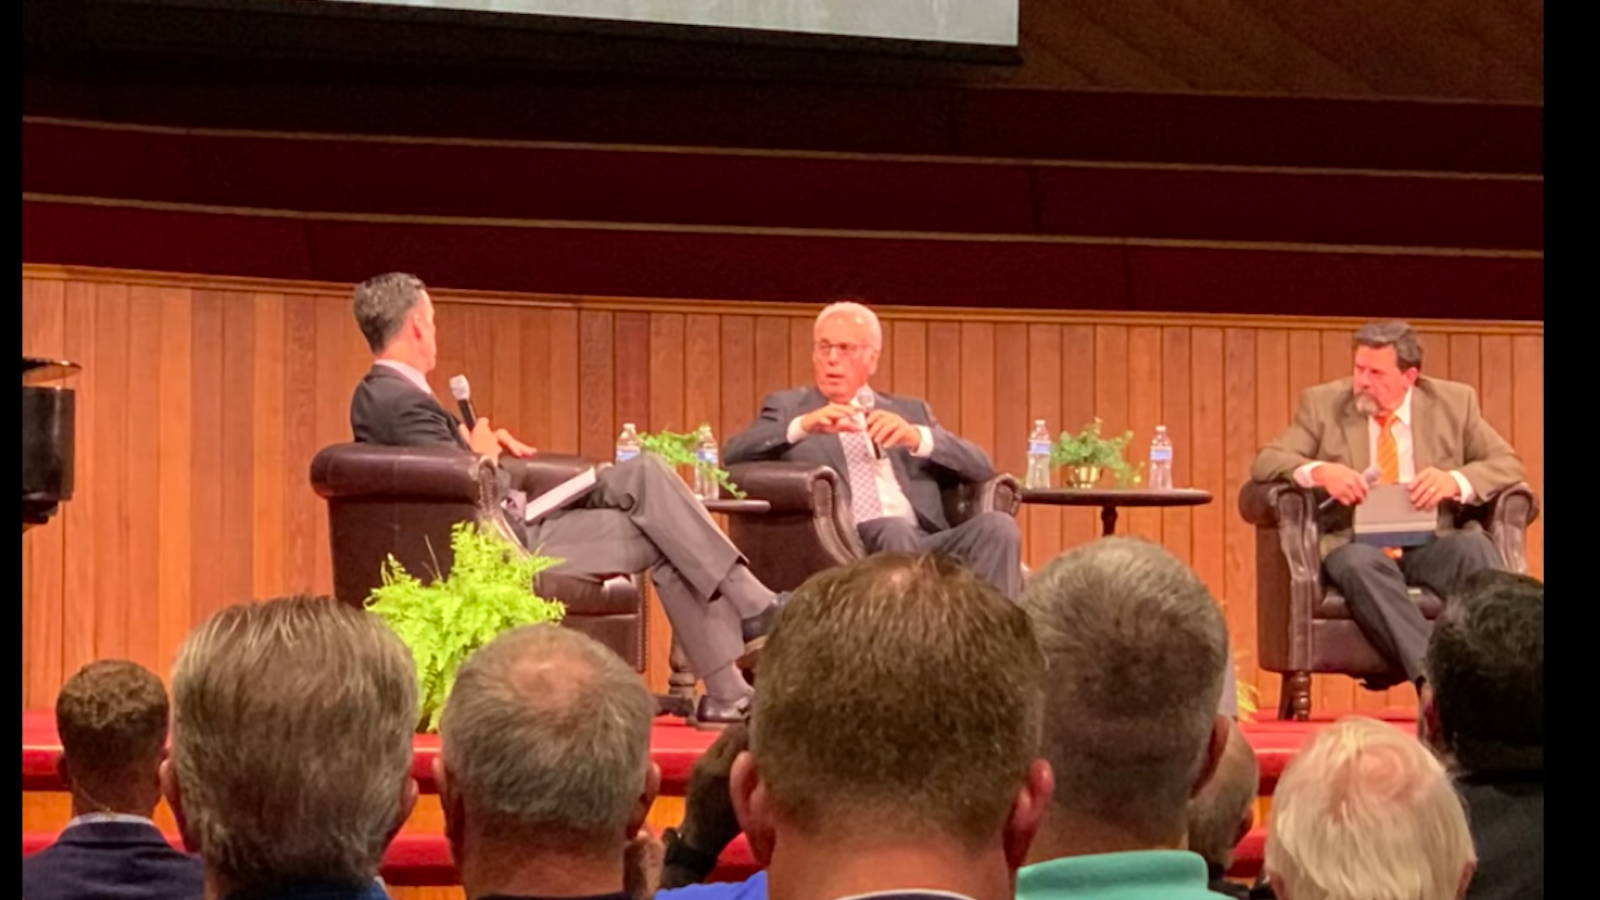 Accusing SBC of 'caving,' John MacArthur says Beth Moore should 'Go home' - Religion News Service